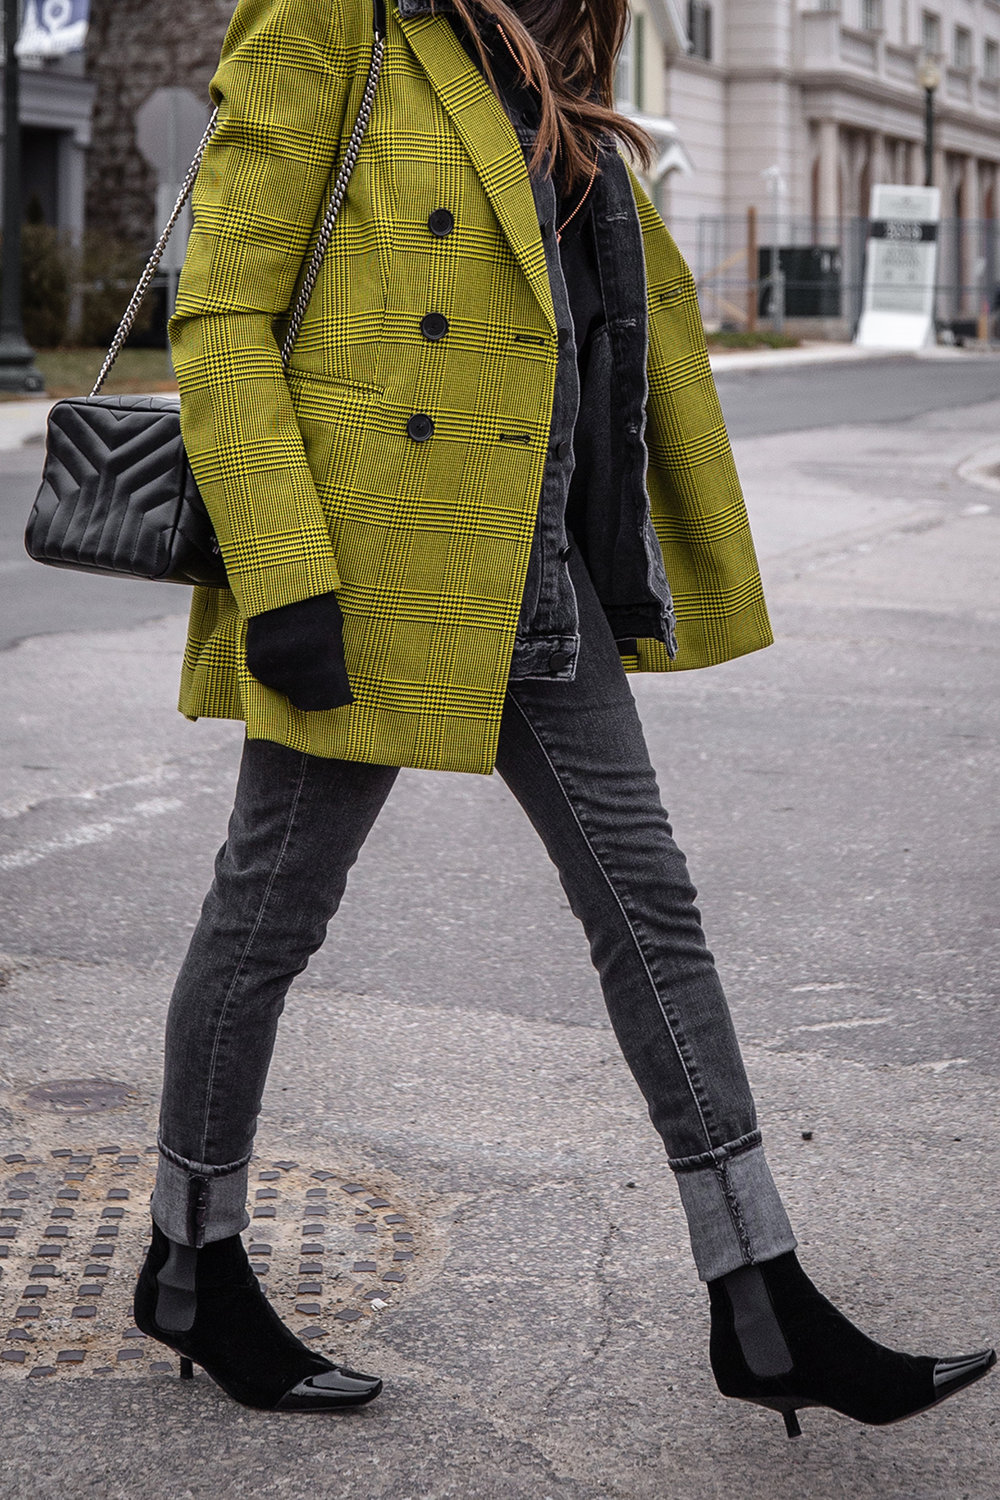 Nathalie Martin, Robert Rodriguez yellow plaid houndstooth blazer, Balenciaga logo beanie hat, Loewe velvet patent leather boots, grey jeans, Alexander Wang denim vest, Frank & Eileen hoodie, Saint Laurent LouLou bag, streetstyle woahstyle.com_6070.jpg